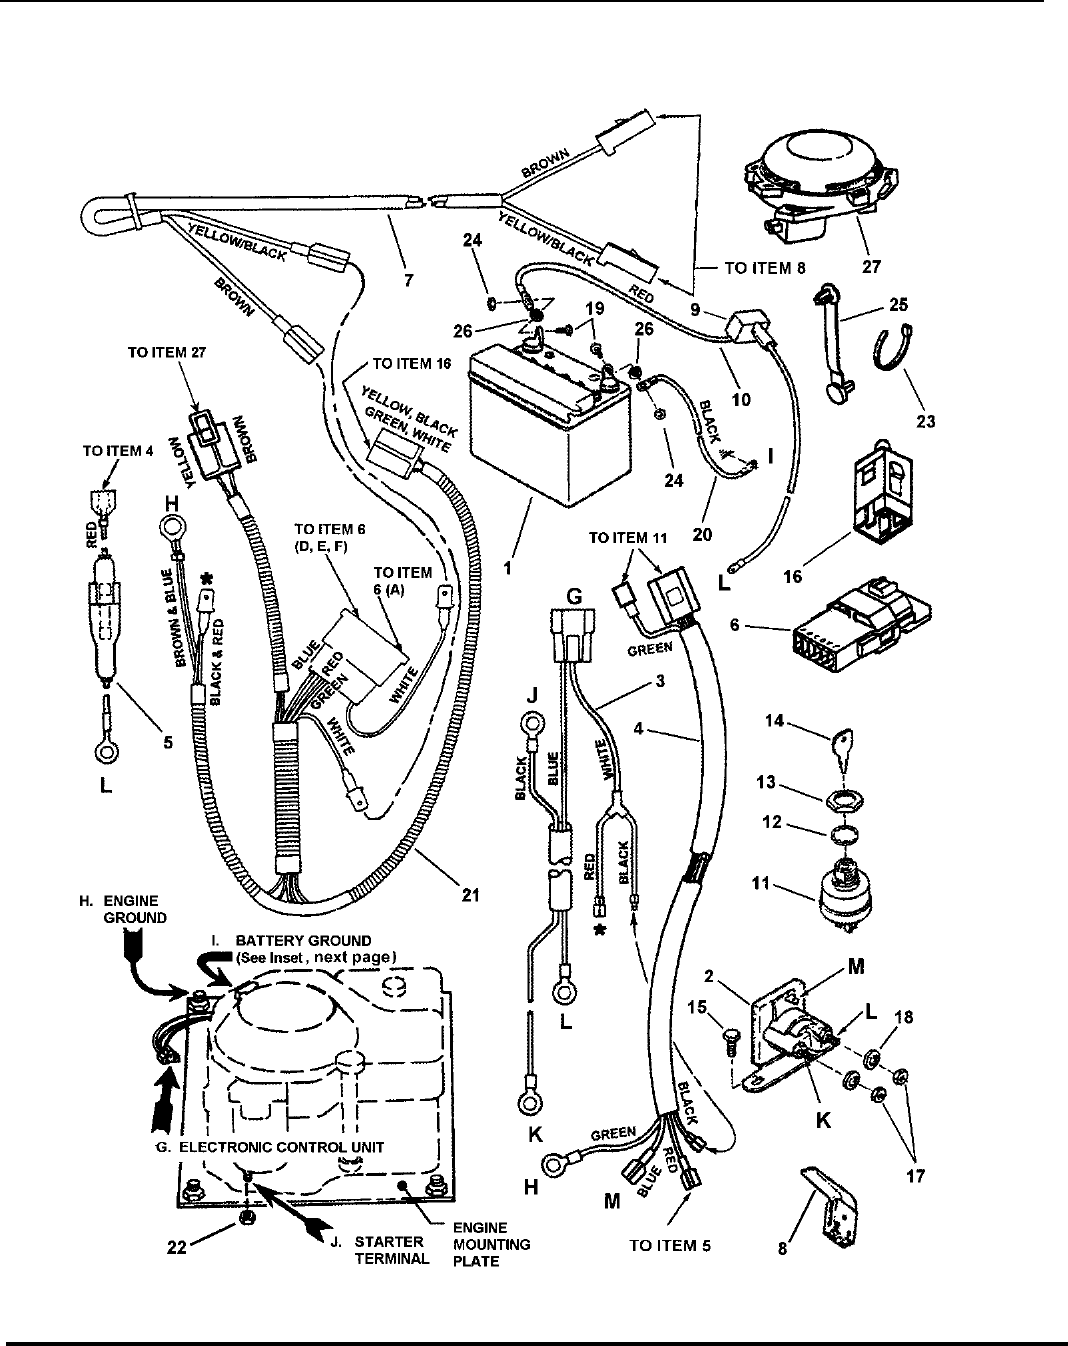 Page 58 of Snapper Lawn Mower 281223BVE (85622) User Guide